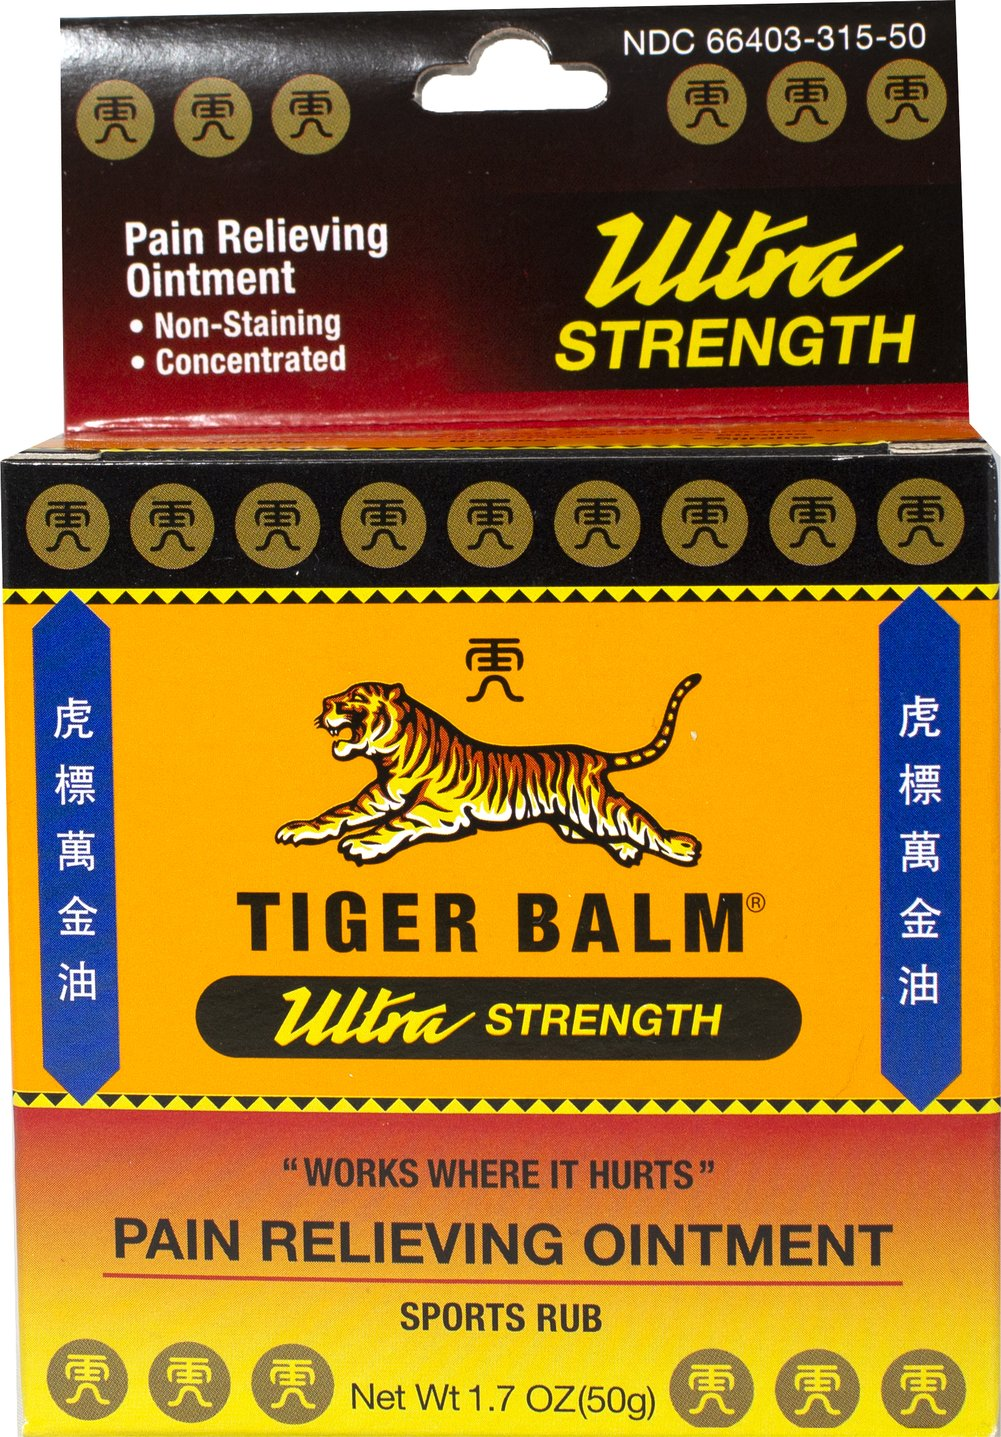 product mix of tiger balm New listing original tiger red balm massage ointment relief muscle ache pain joint pain 21ml brand new $788 or best offer  154 product ratings [object object] $599 or best offer free shipping  tiger balm red extra strength herbal rub muscles headache pain relief ointment see more like this.